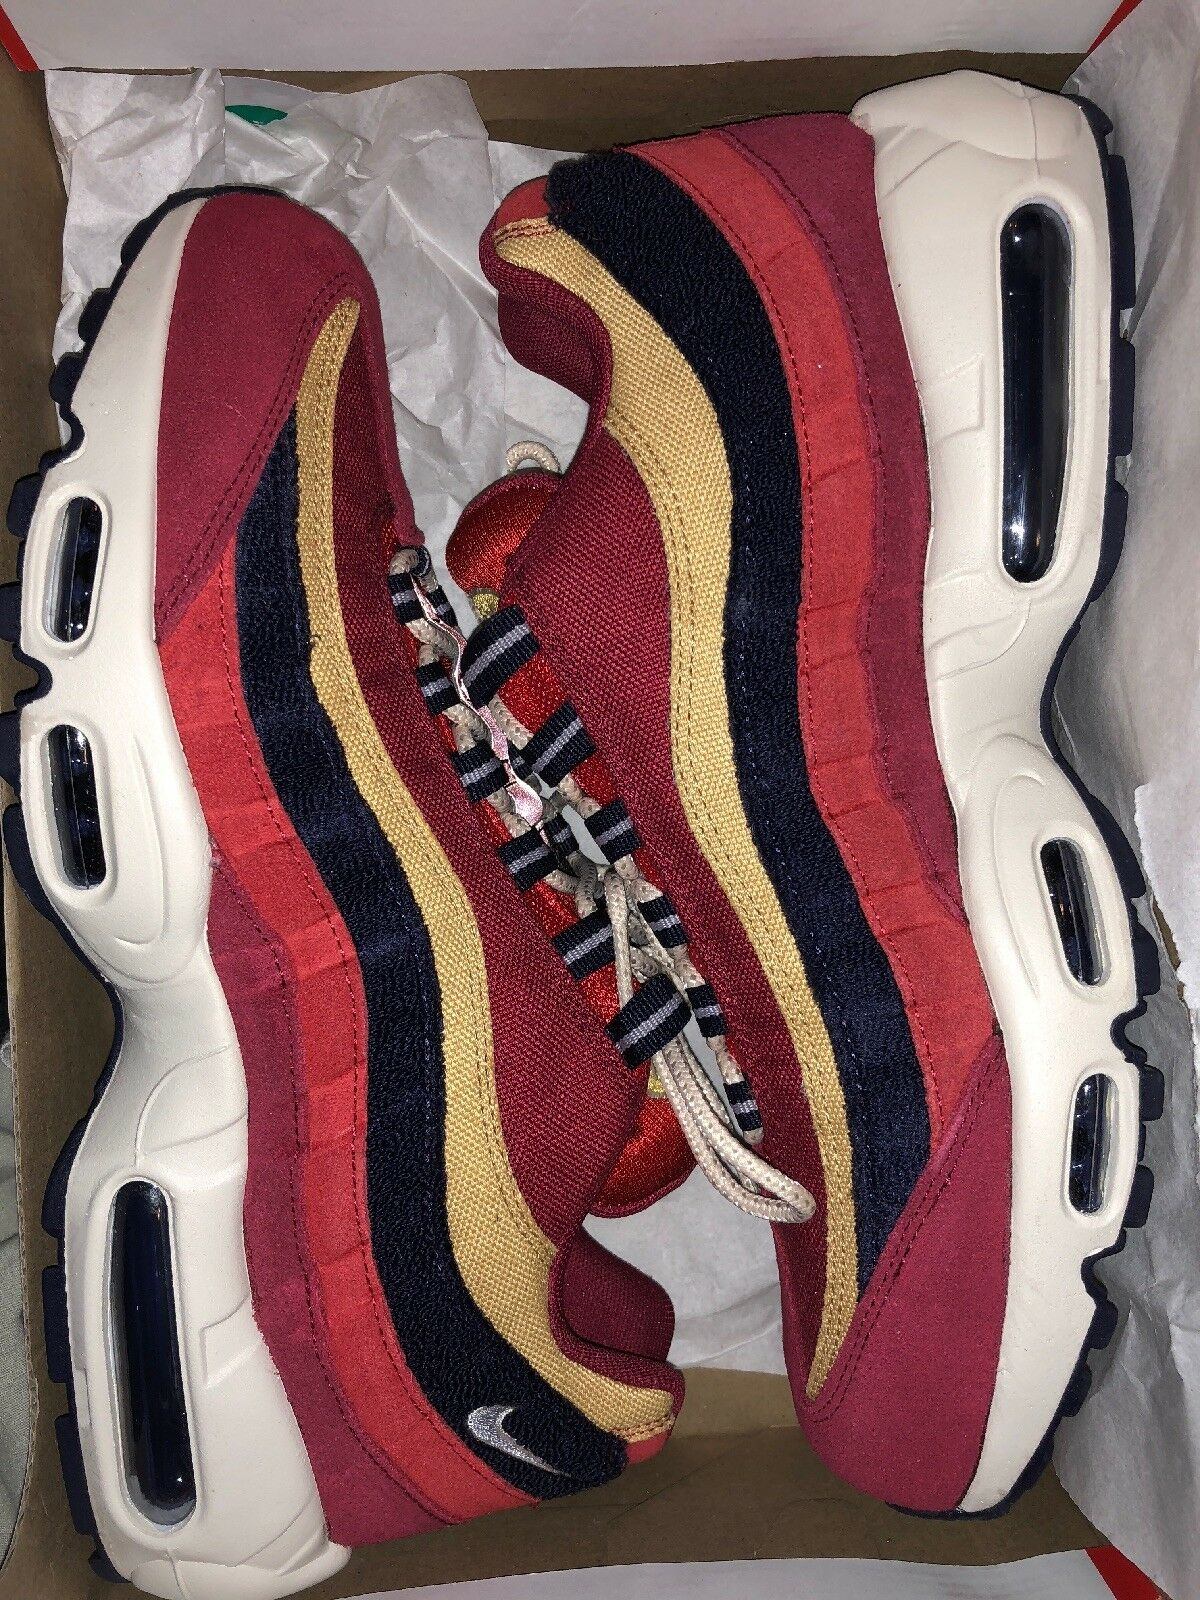 NIKE AIR MAX 95 PREMIUM RED, NAVY, CREAM COLORWAY. WITH BOX. WORN ONCE.